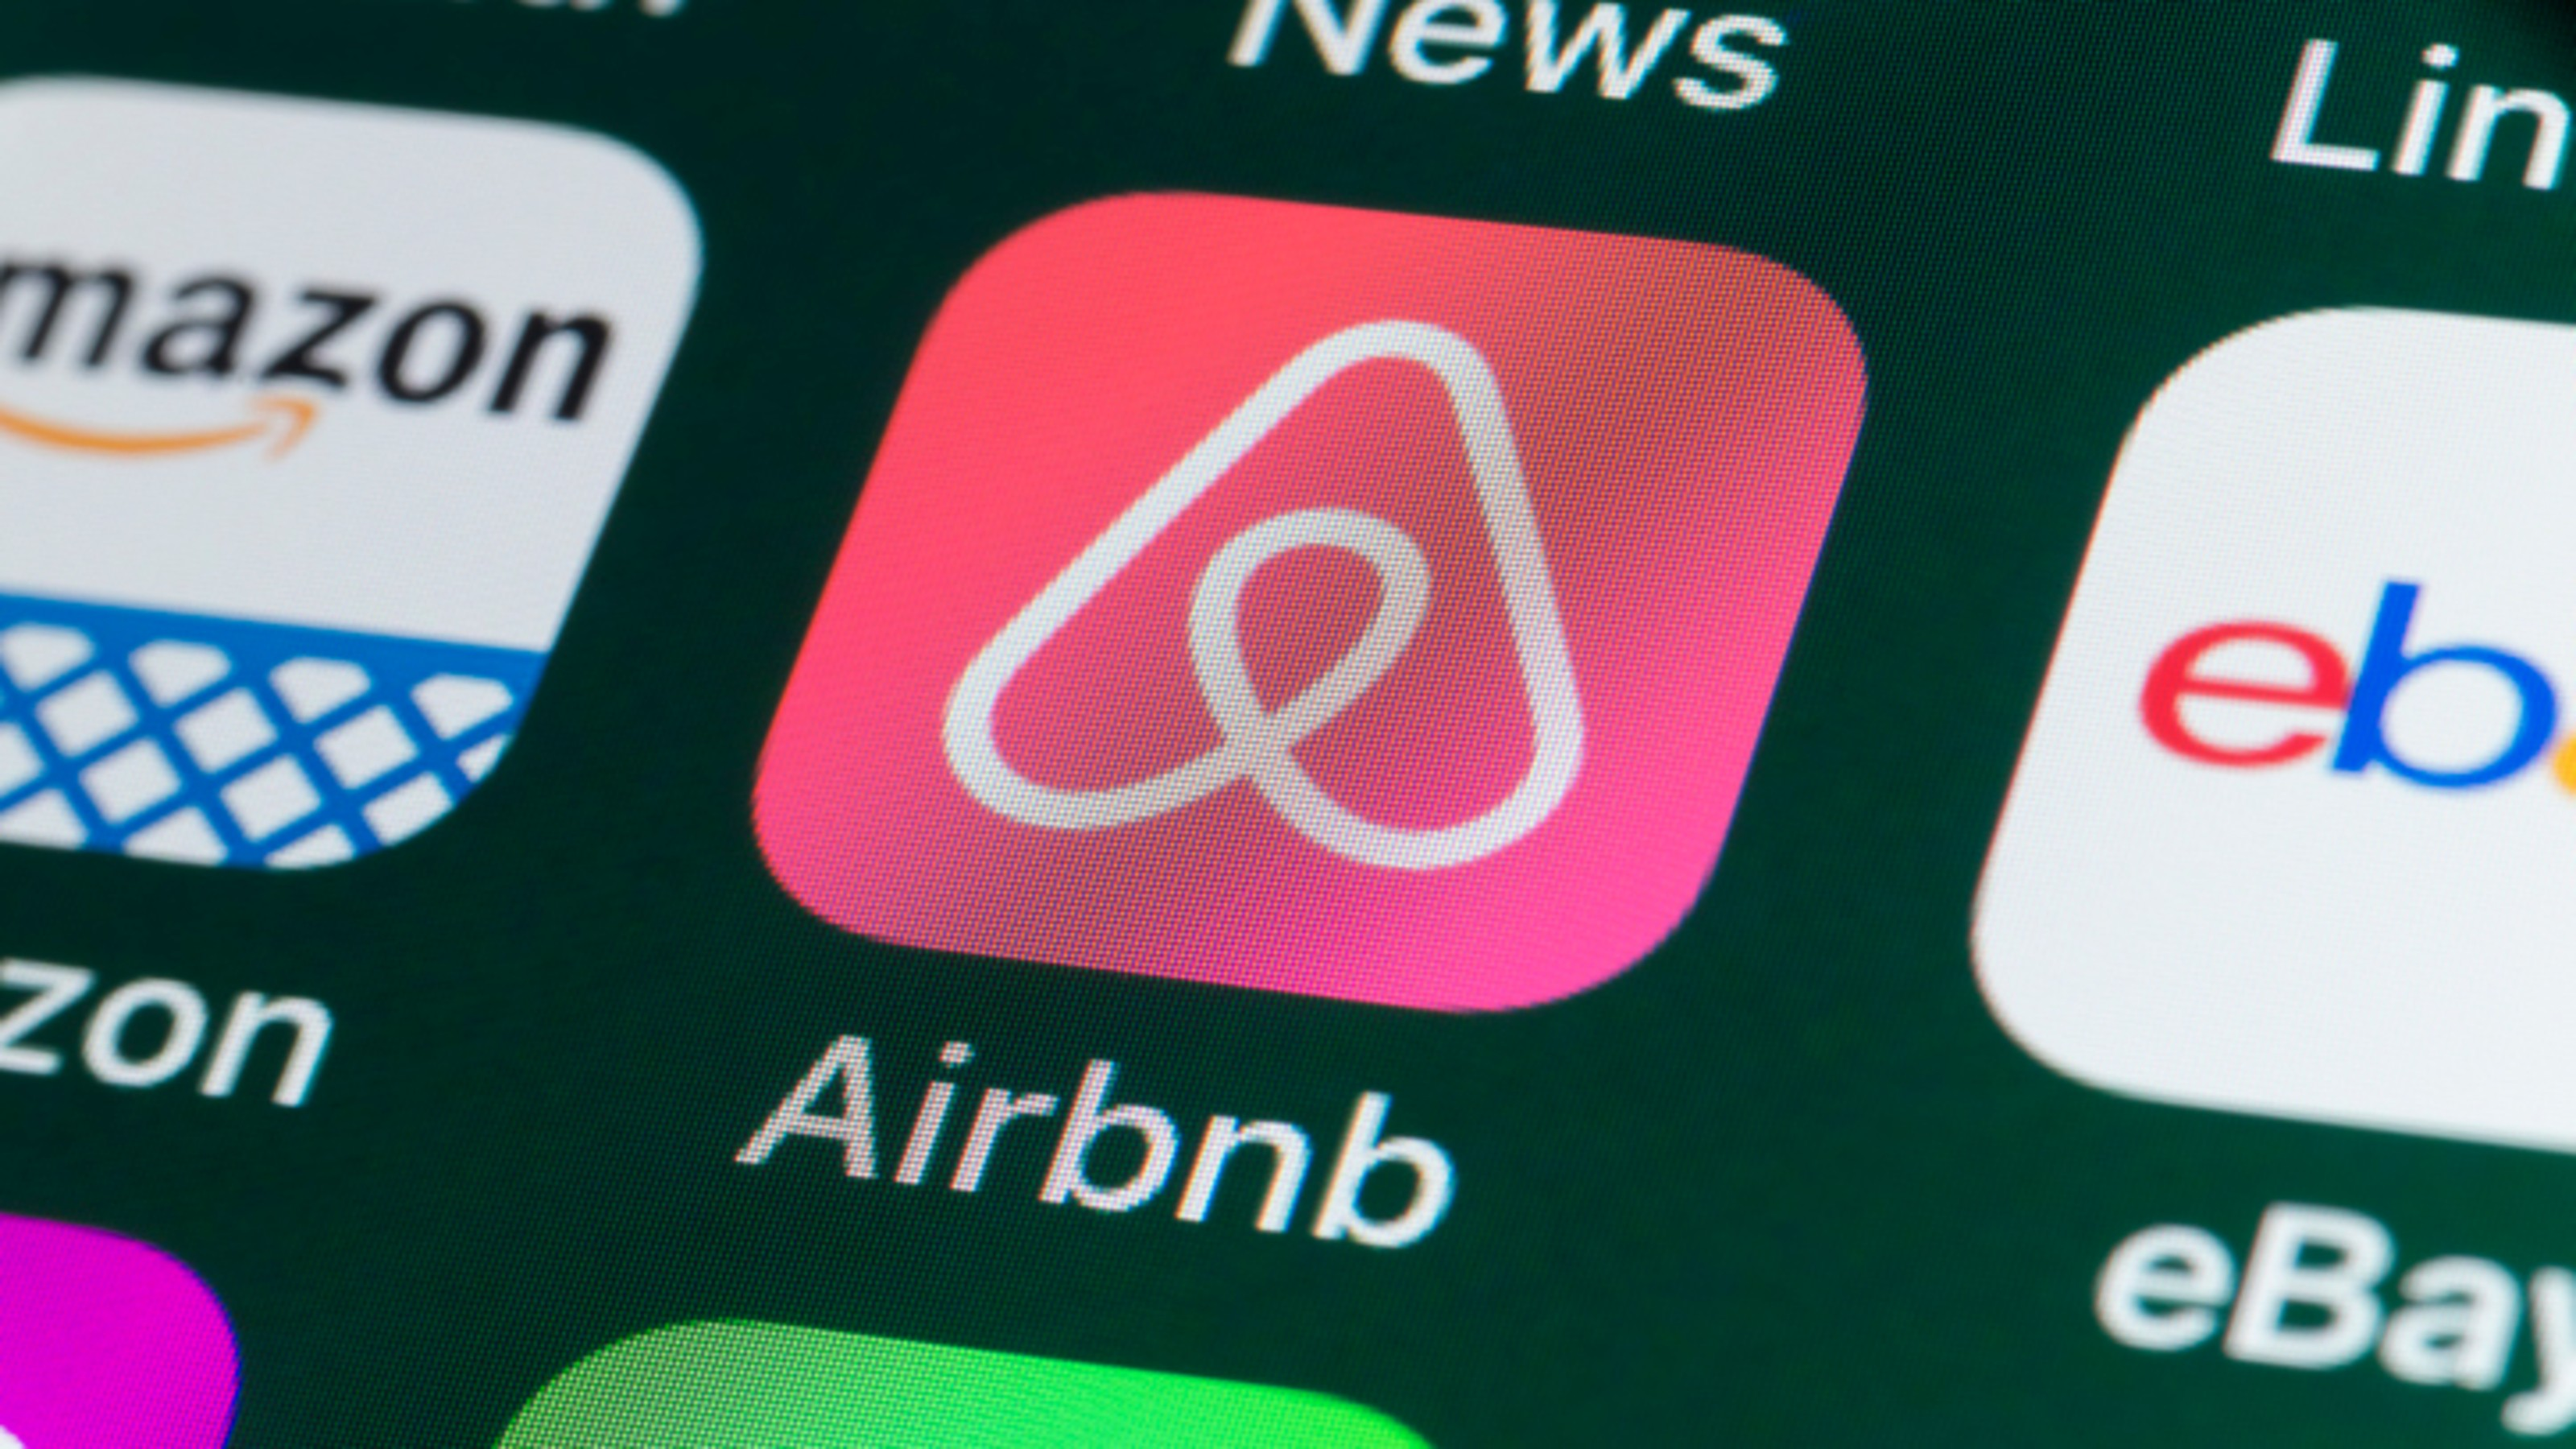 The Airbnb IPO Testbed Vegas